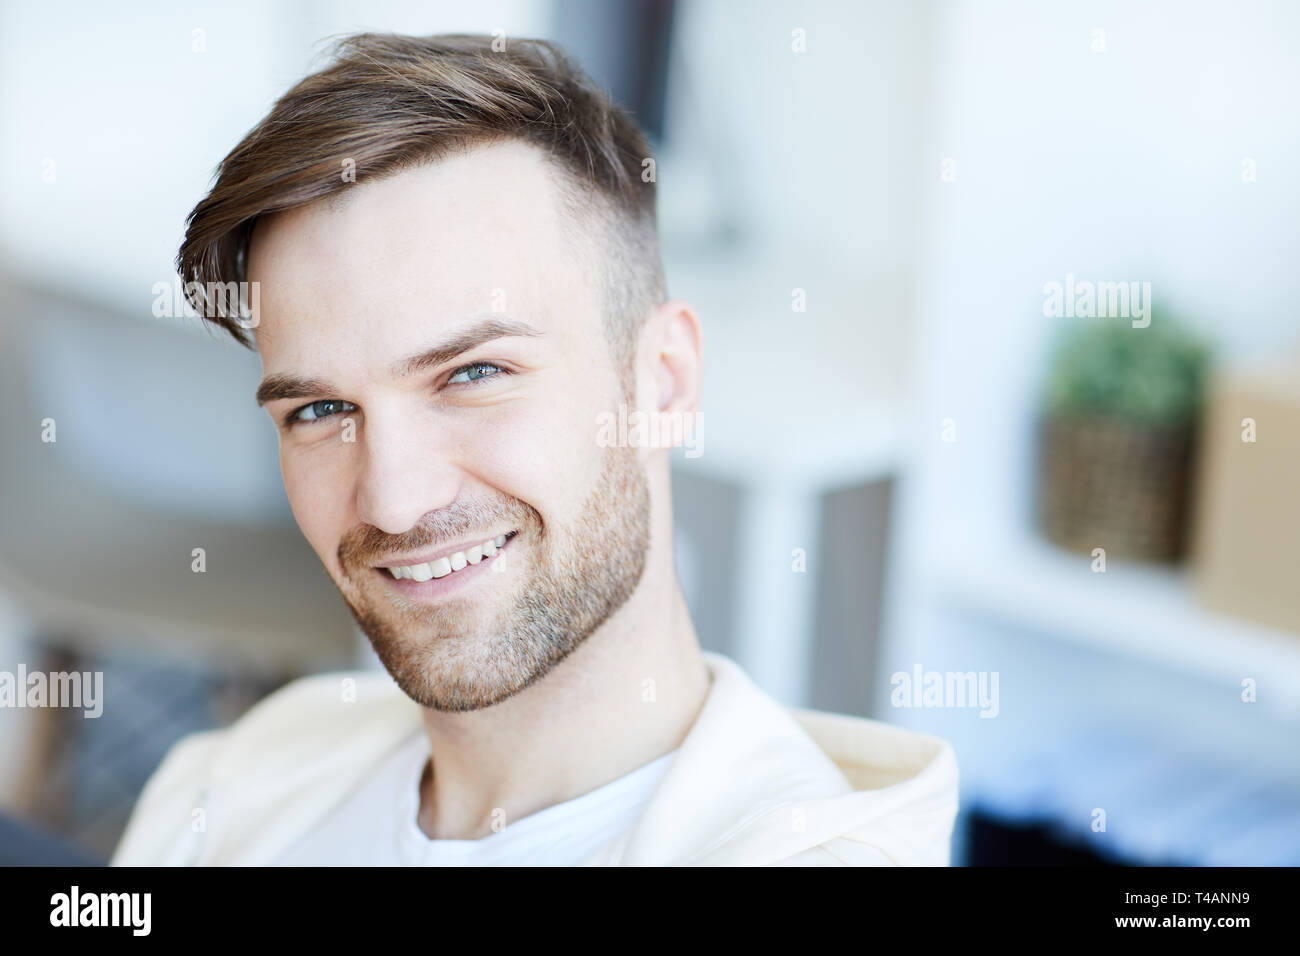 Portrait of Handsome Man - Stock Image